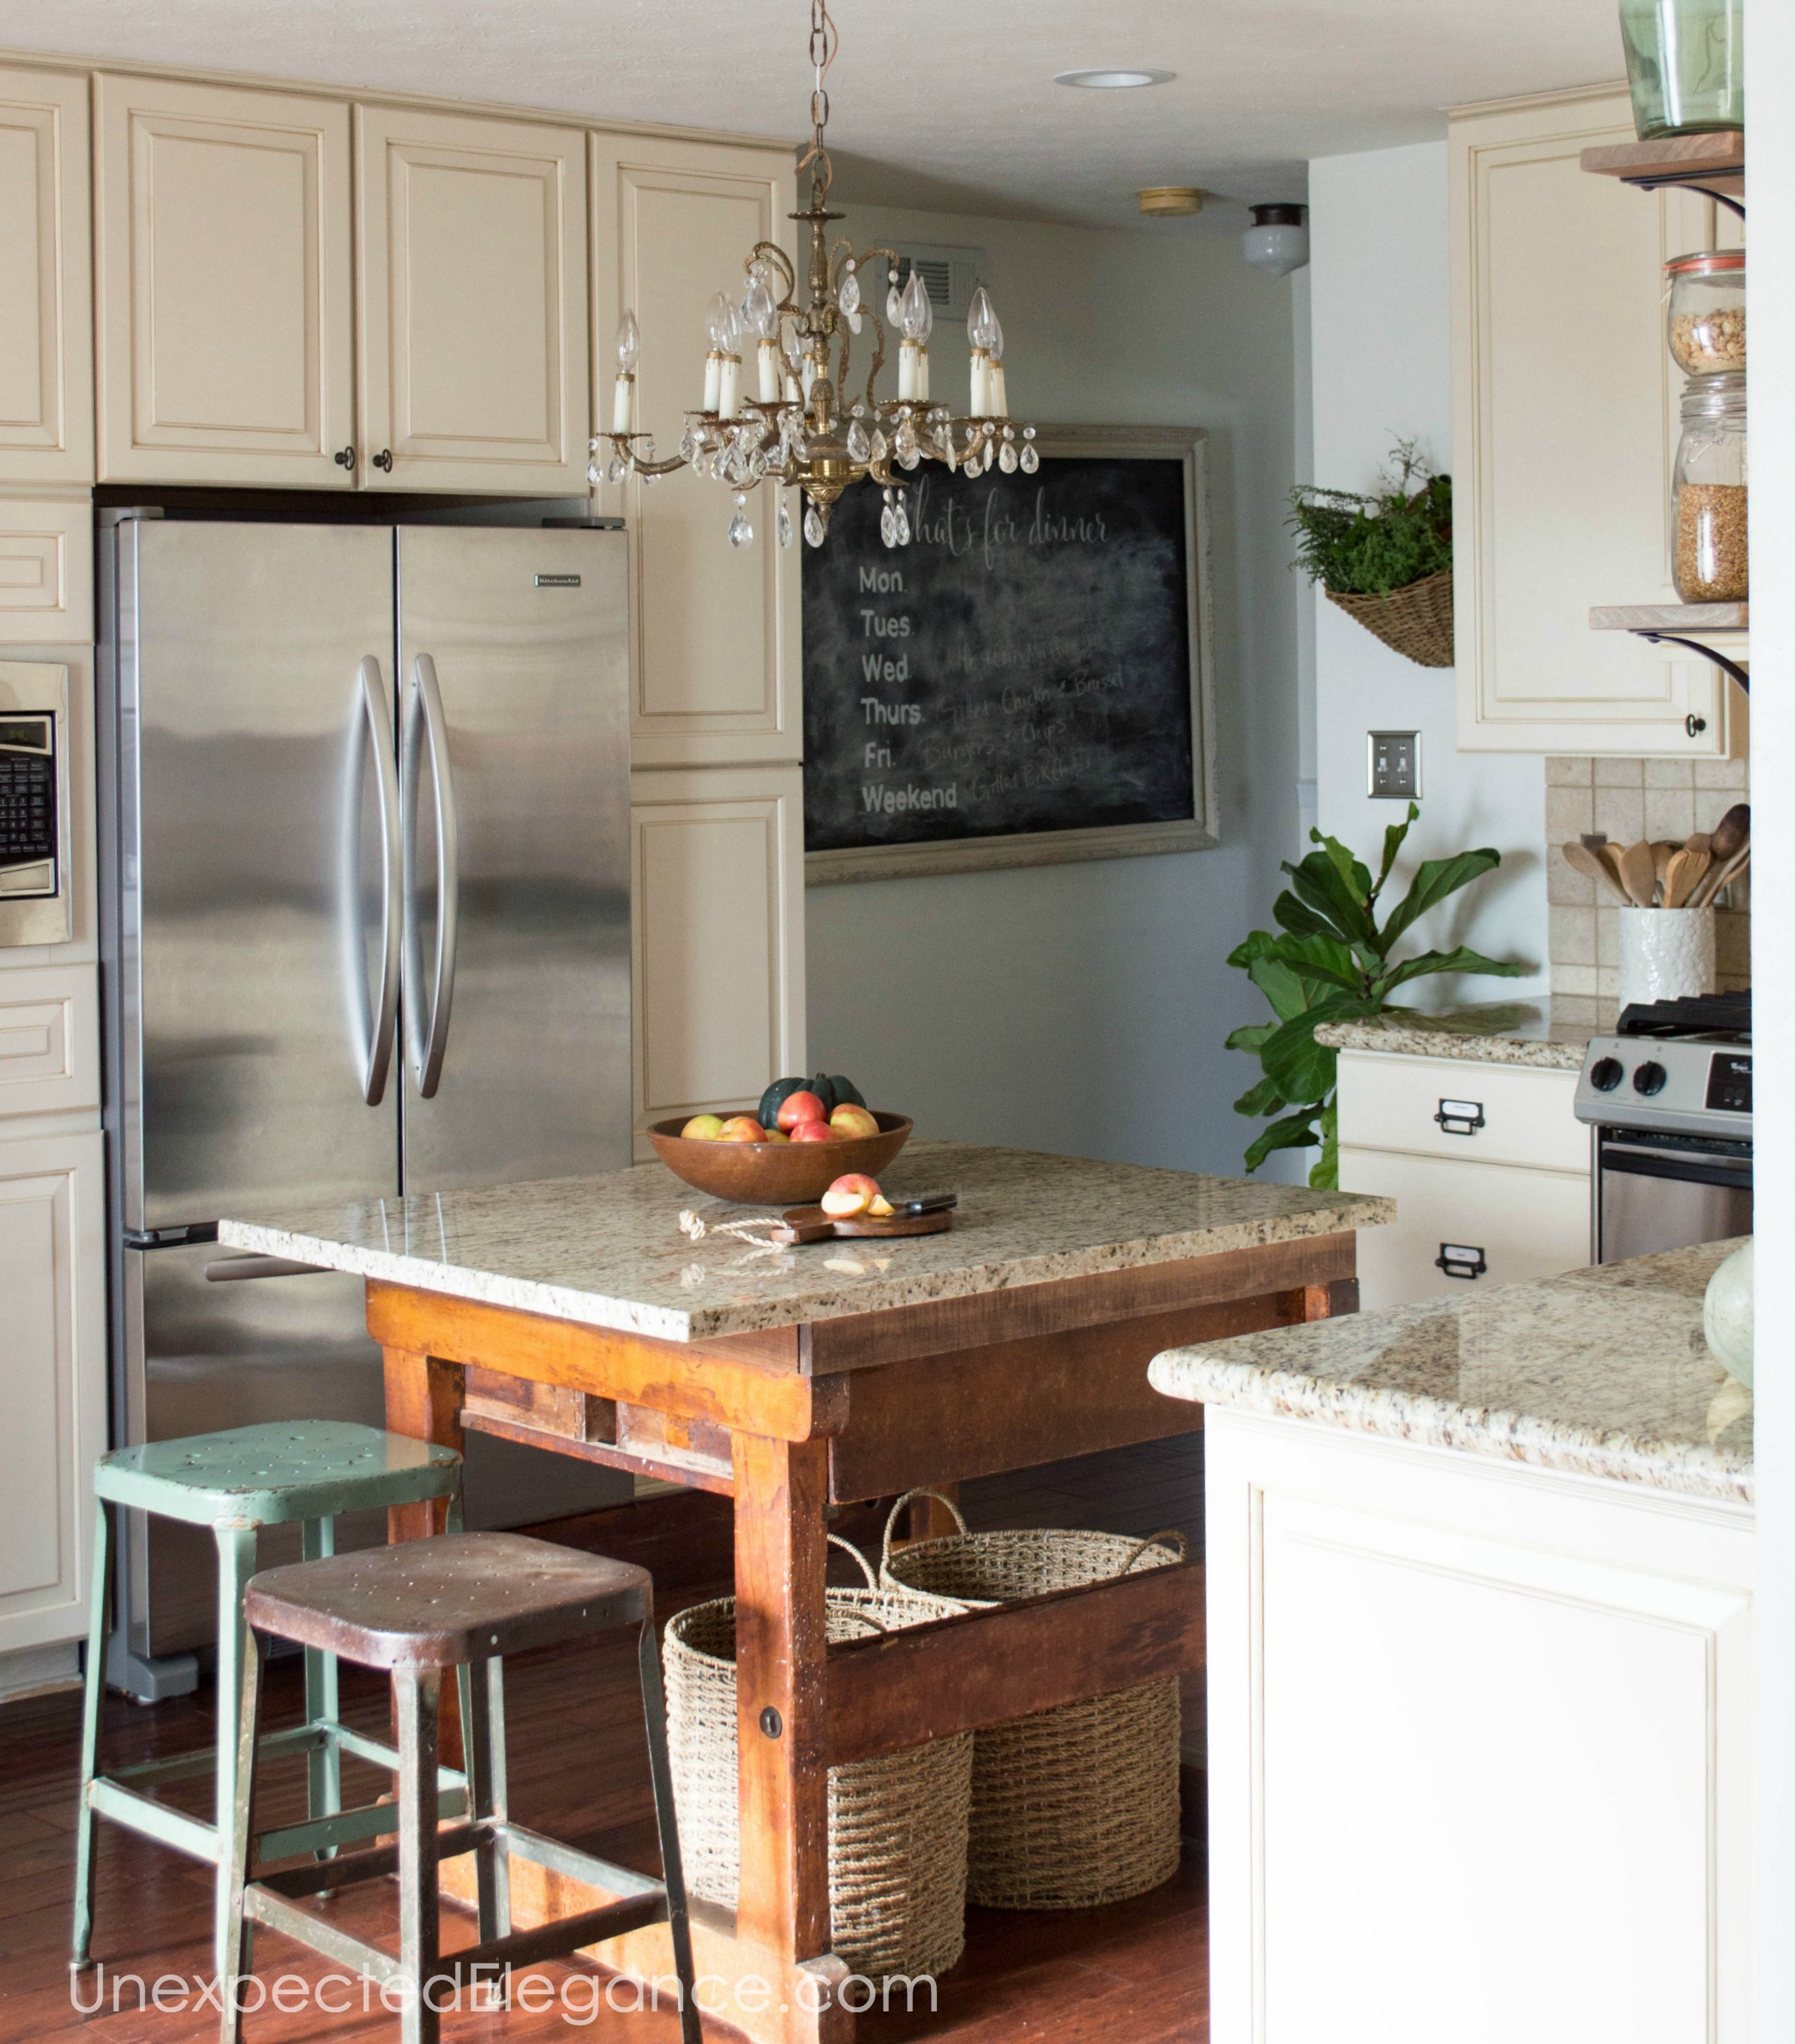 Does Your Kitchen Need An Update, But You Canu0027t Afford To Ripe Out